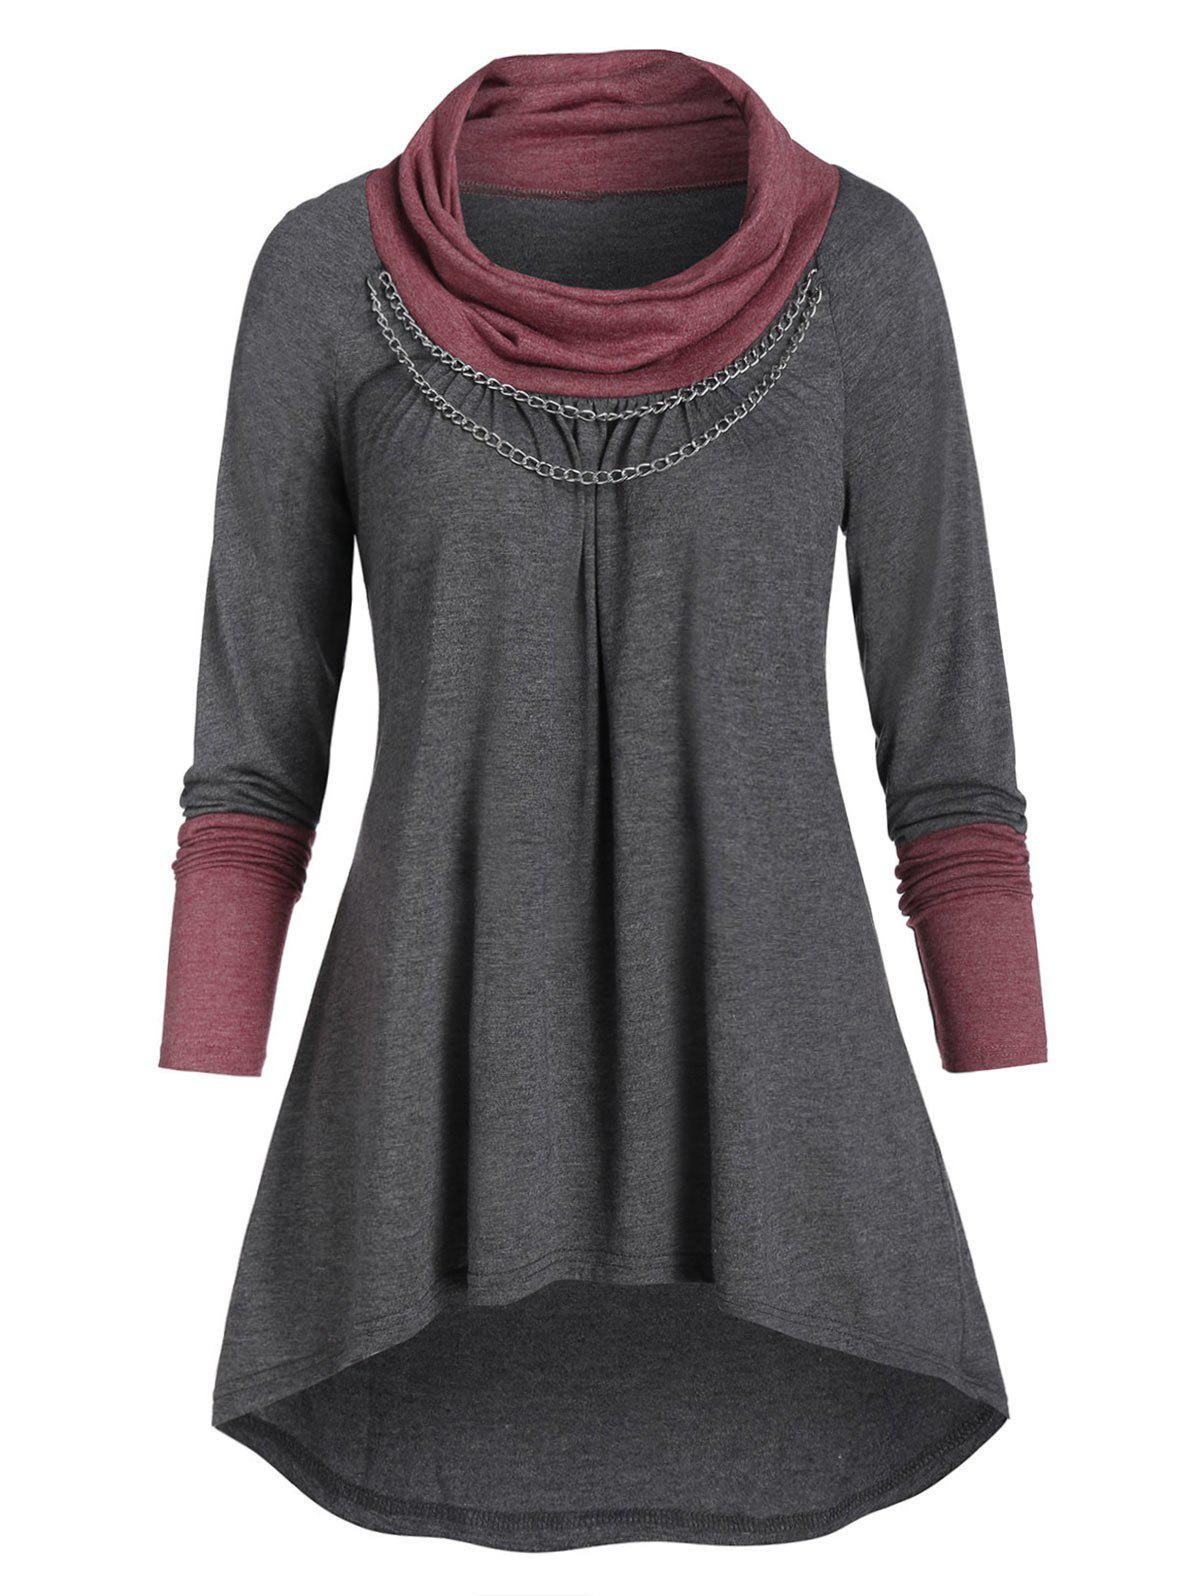 Contrast Heathered Chain Embellished High Low T-shirt - GRAY 2XL